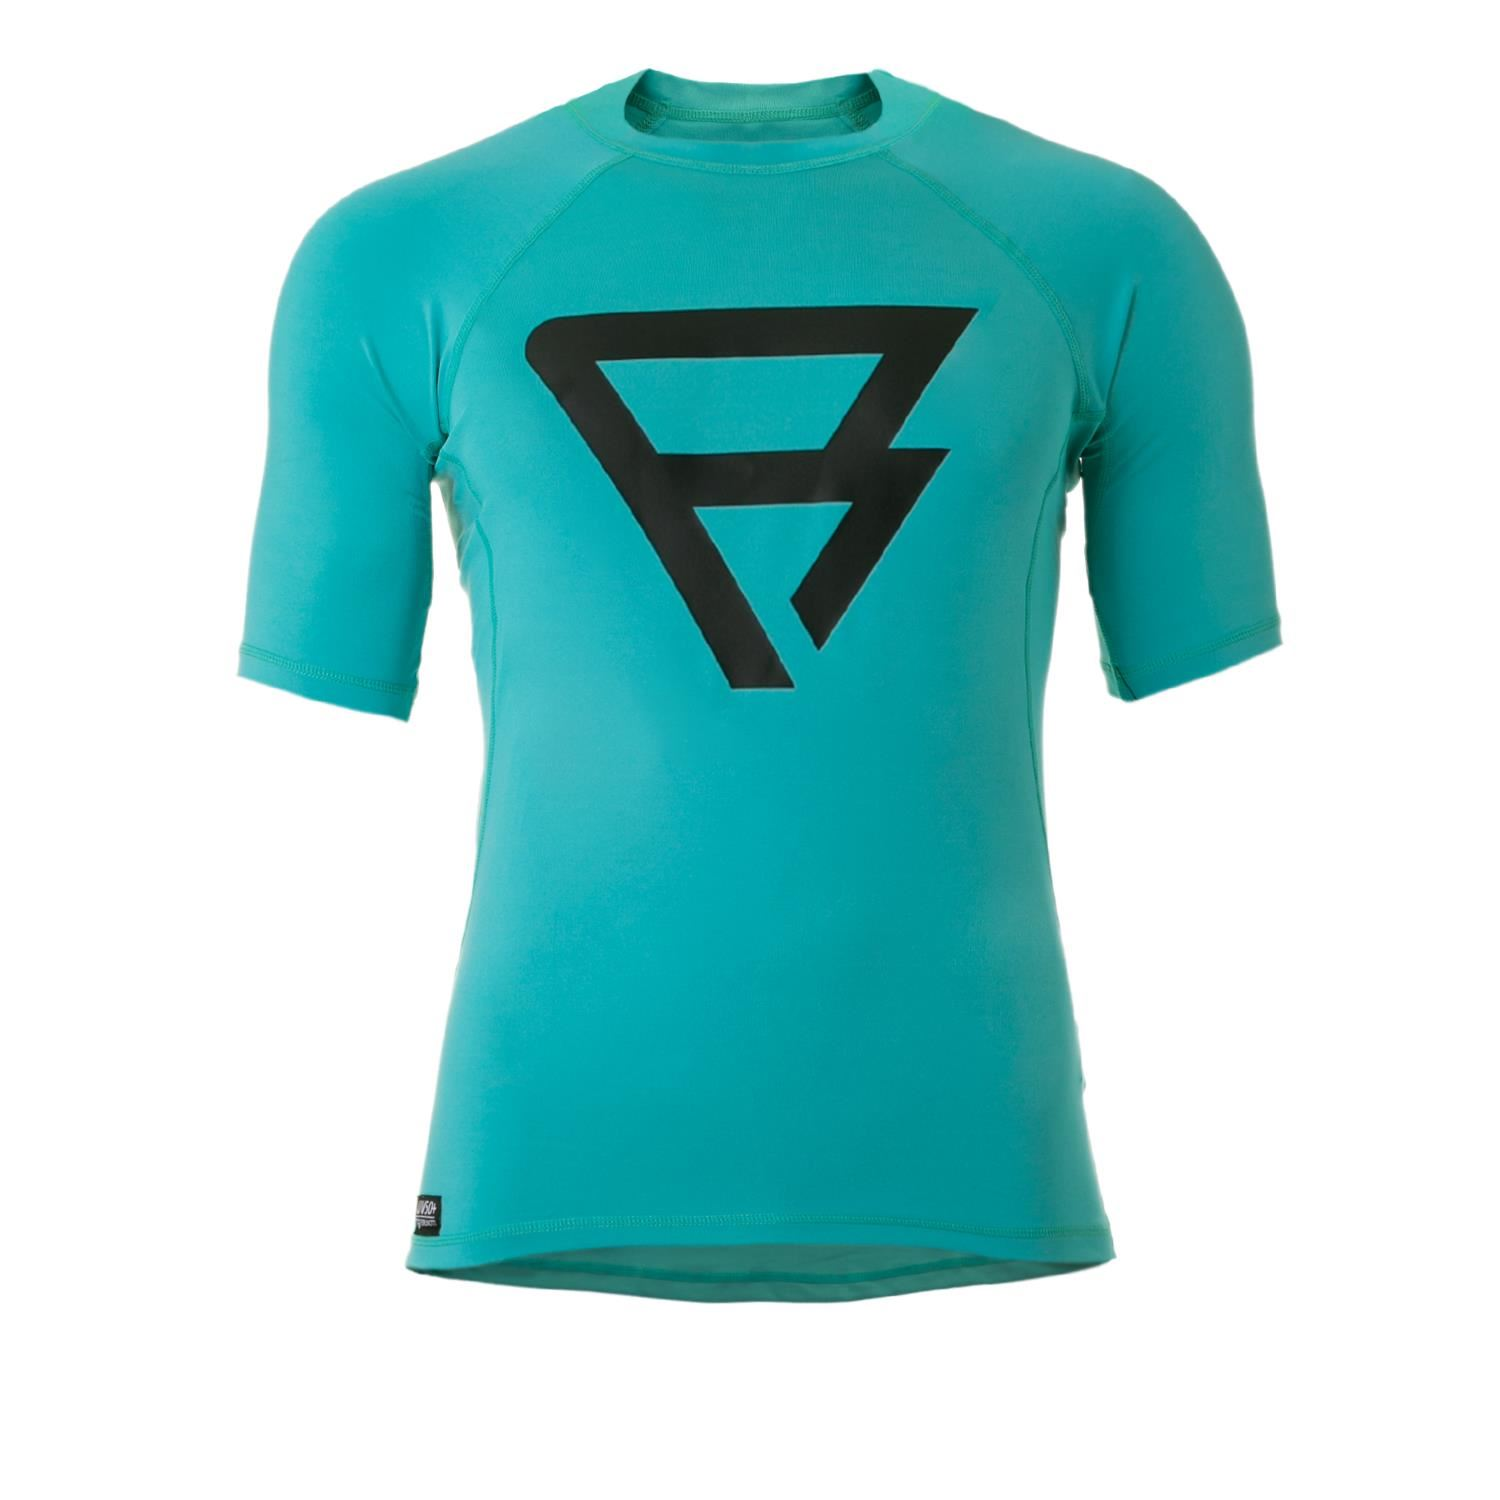 Brunotti Defence Rashguard S/S Men